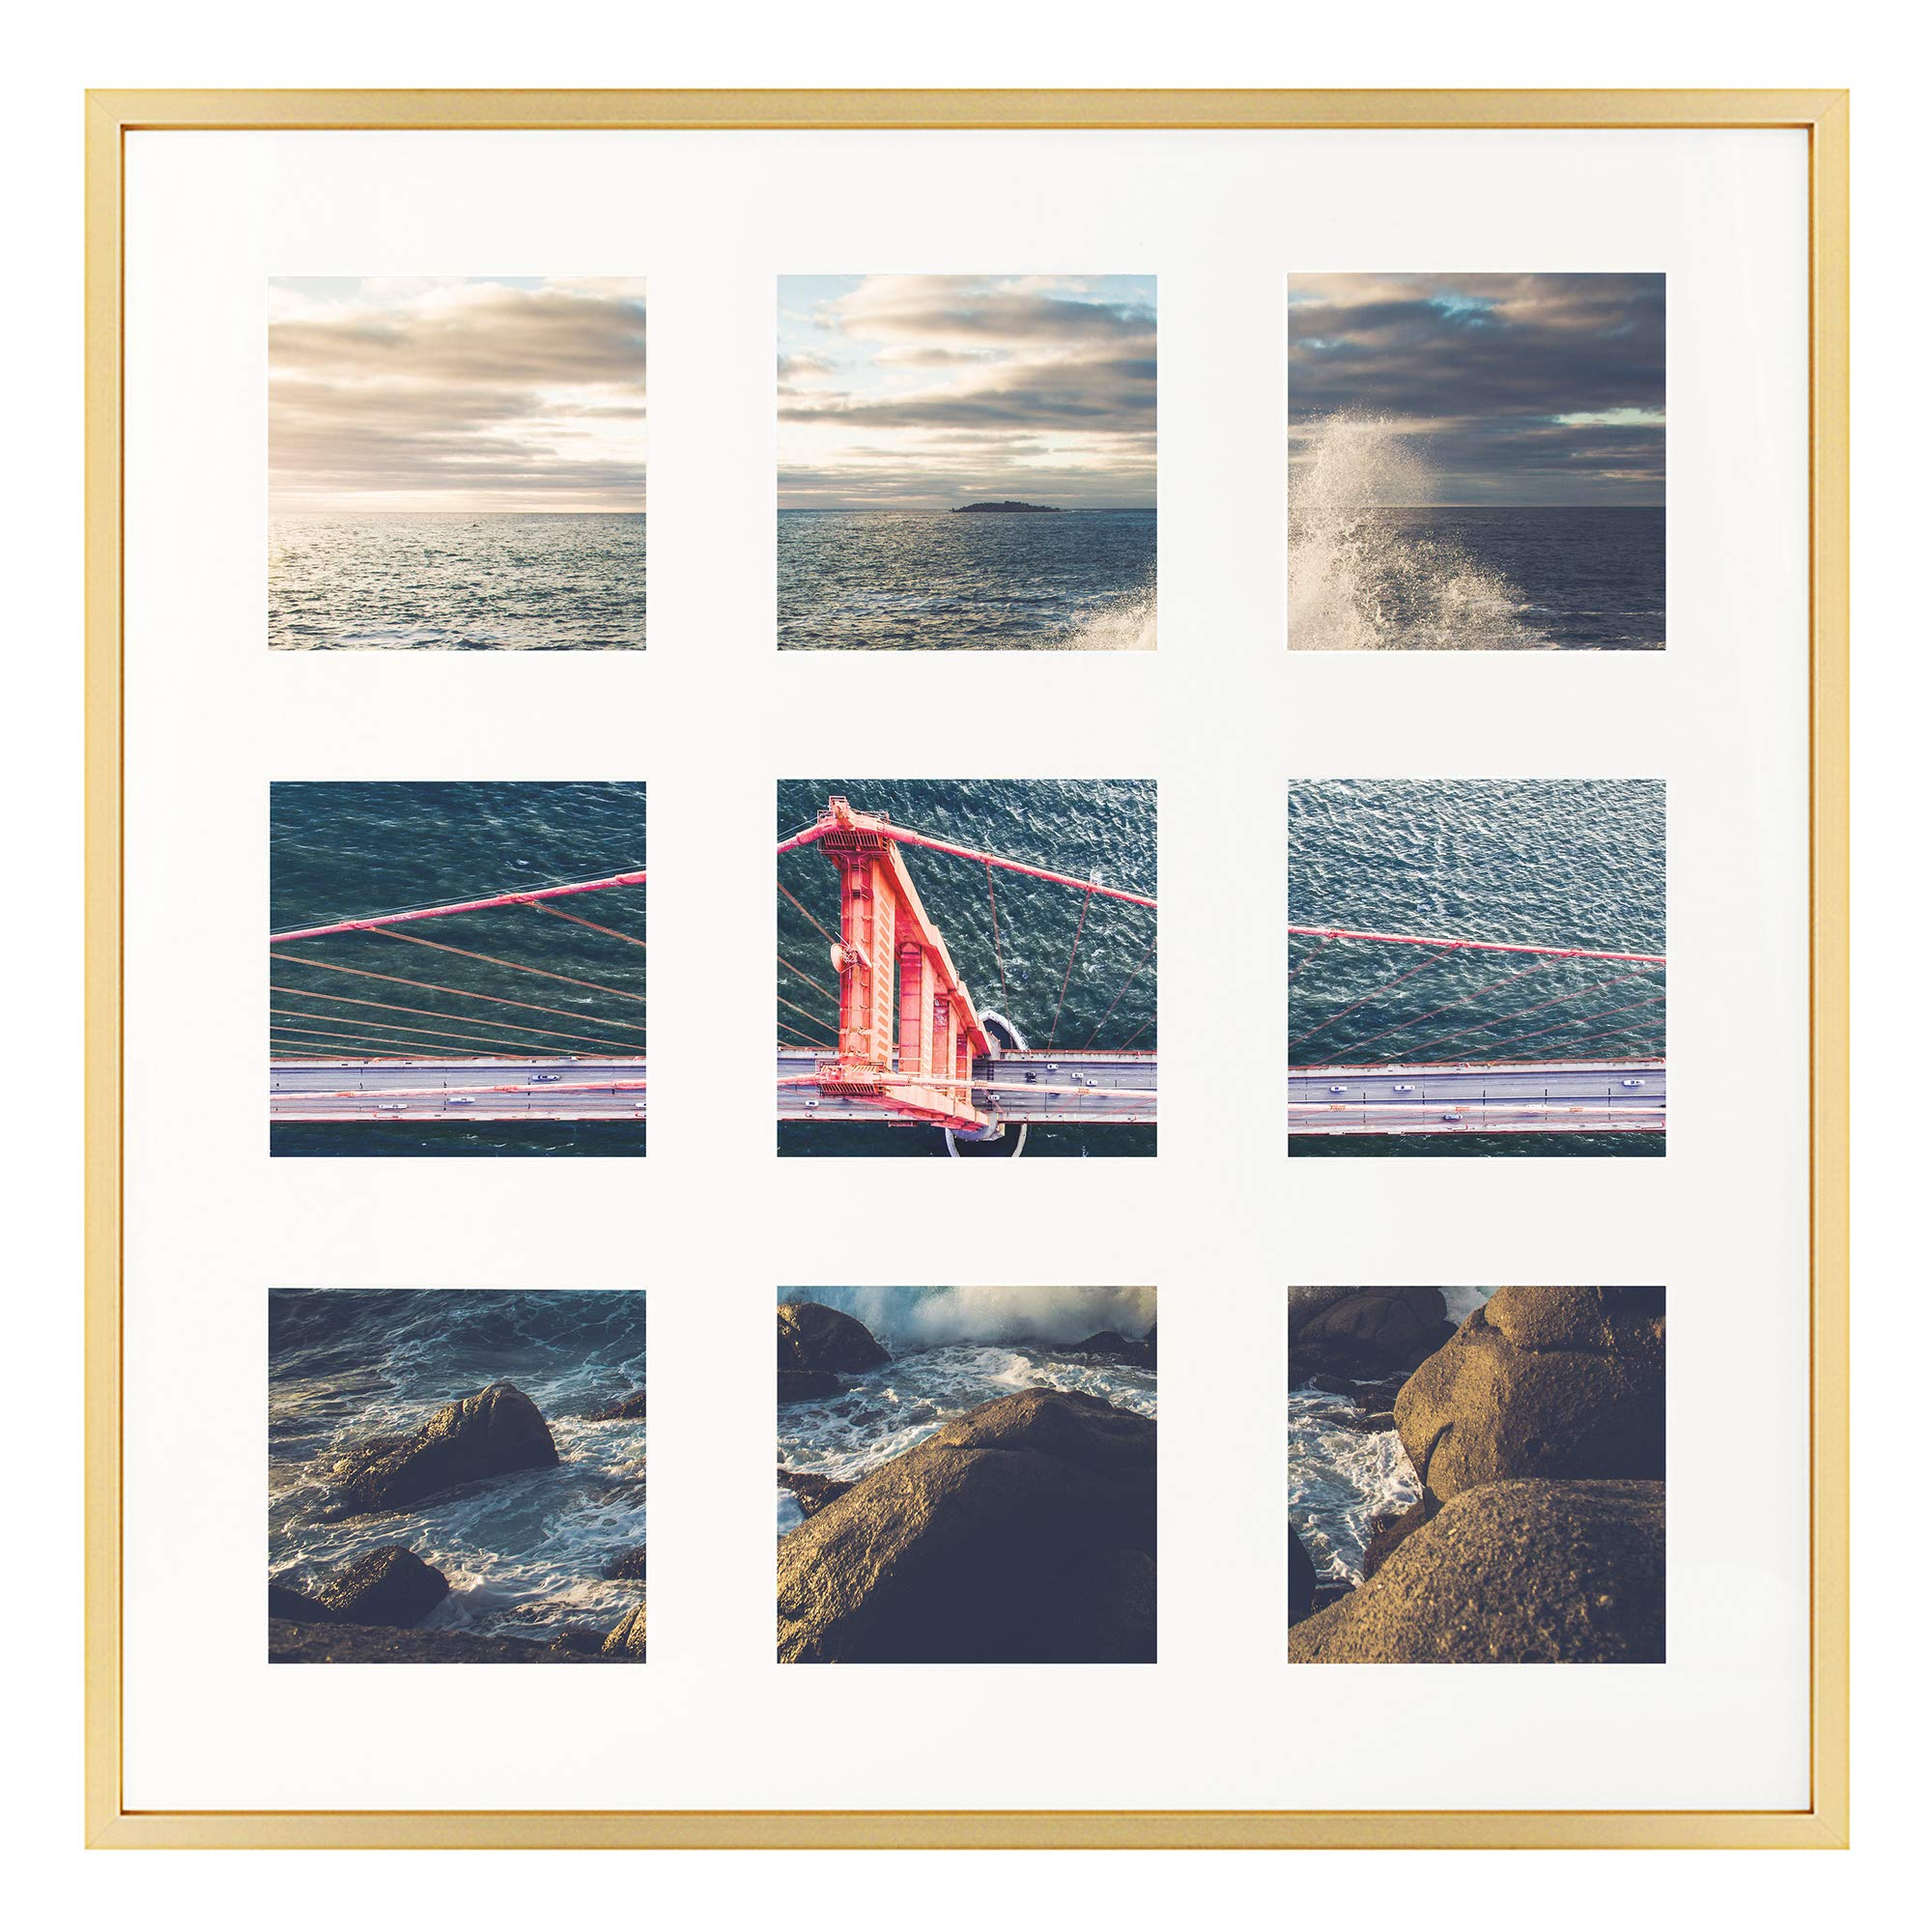 Frametory, 16x16 Gold Aluminum Picture Frame - Matted for Nine 4x4 Pictures - Square Collage Photograph Frame - Wall Display - Inspirational Prints, Quotes, and Dream Frame Ideas by Frametory